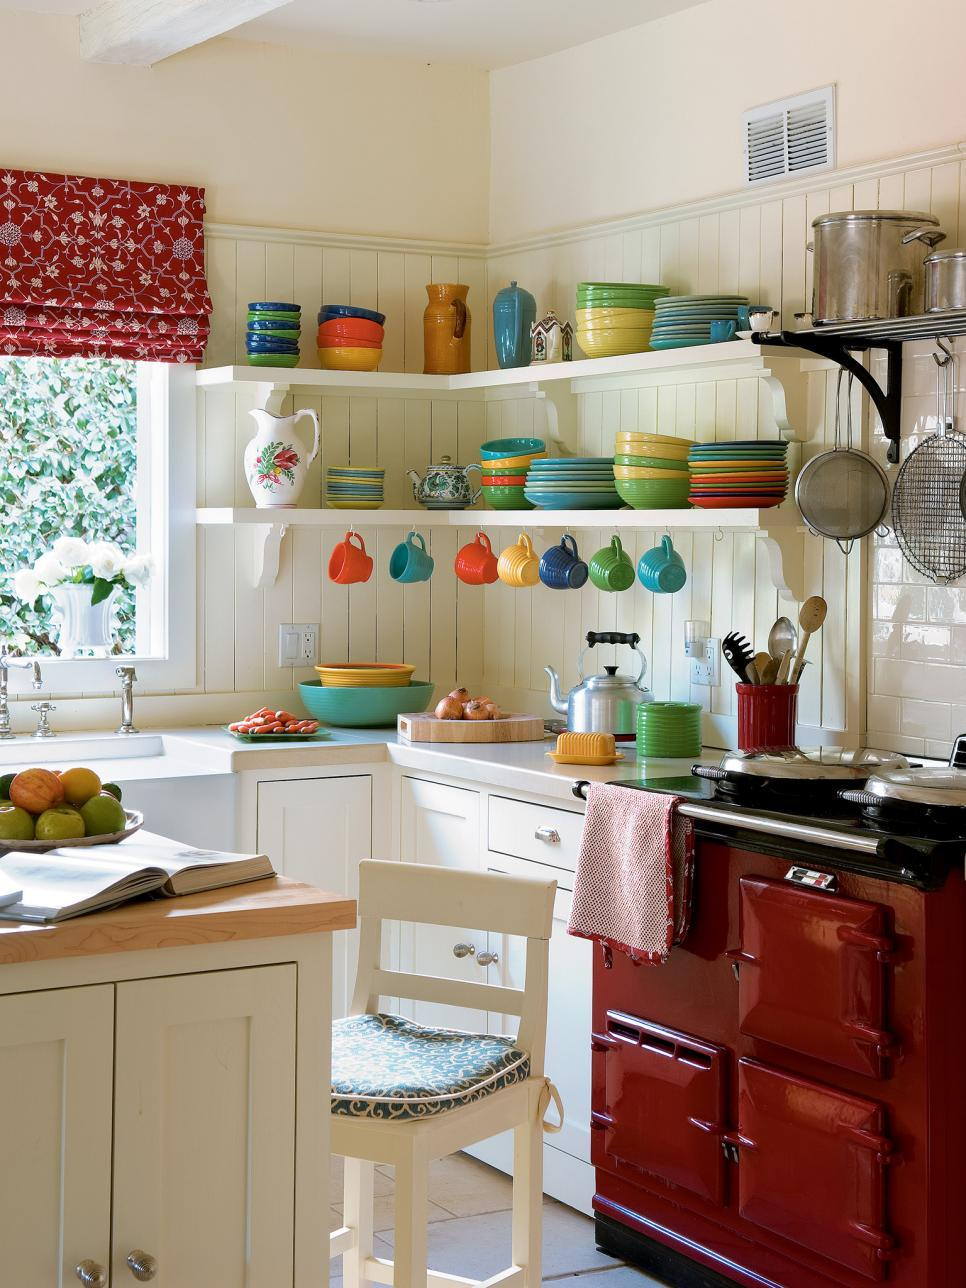 pictures of small kitchen design ideas from hgtv | hgtv SNILOVY